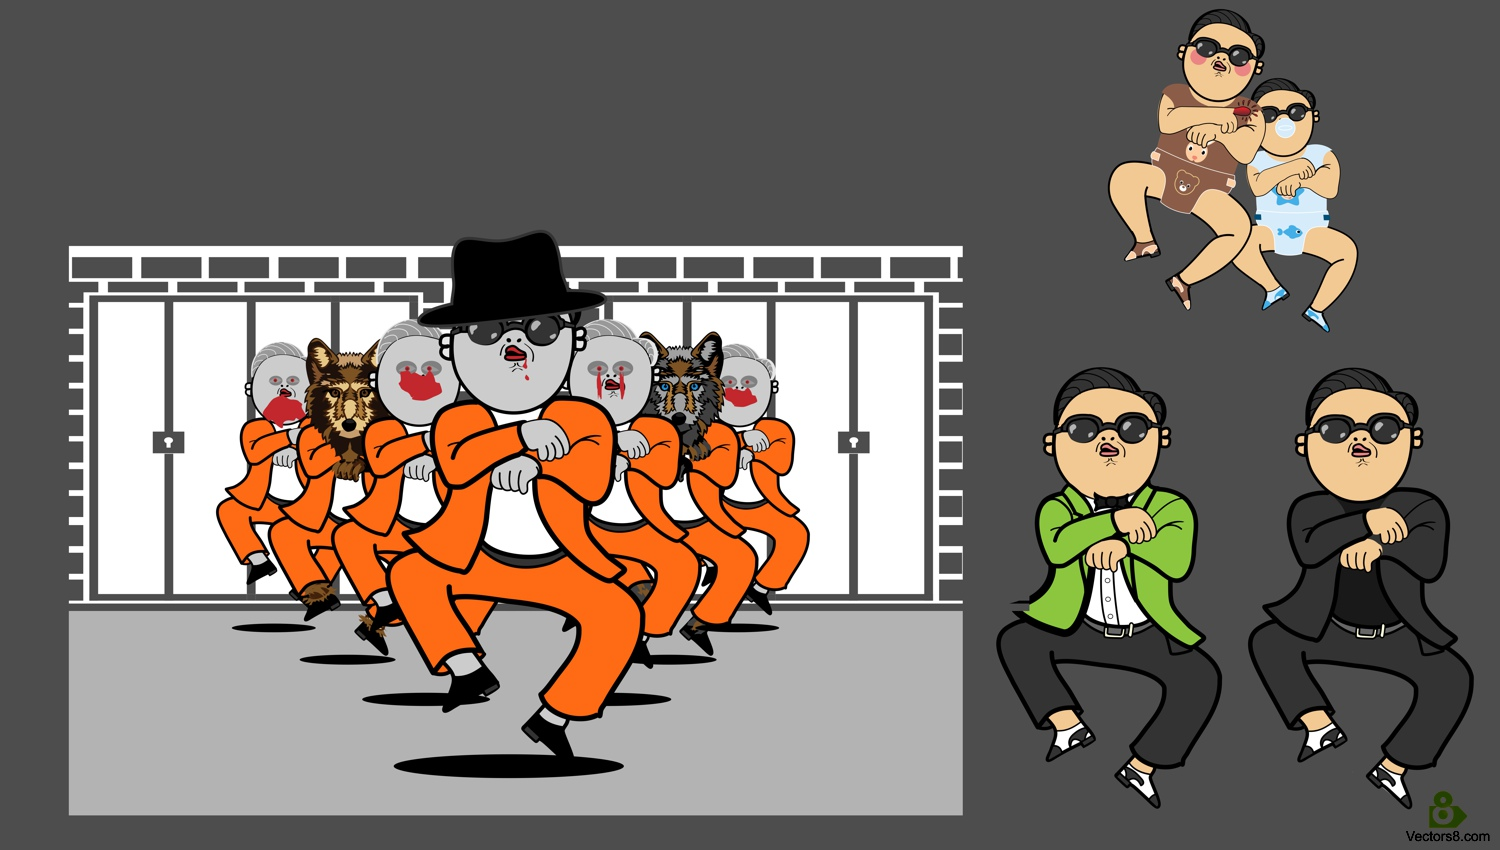 PSY with Gangnam Style.